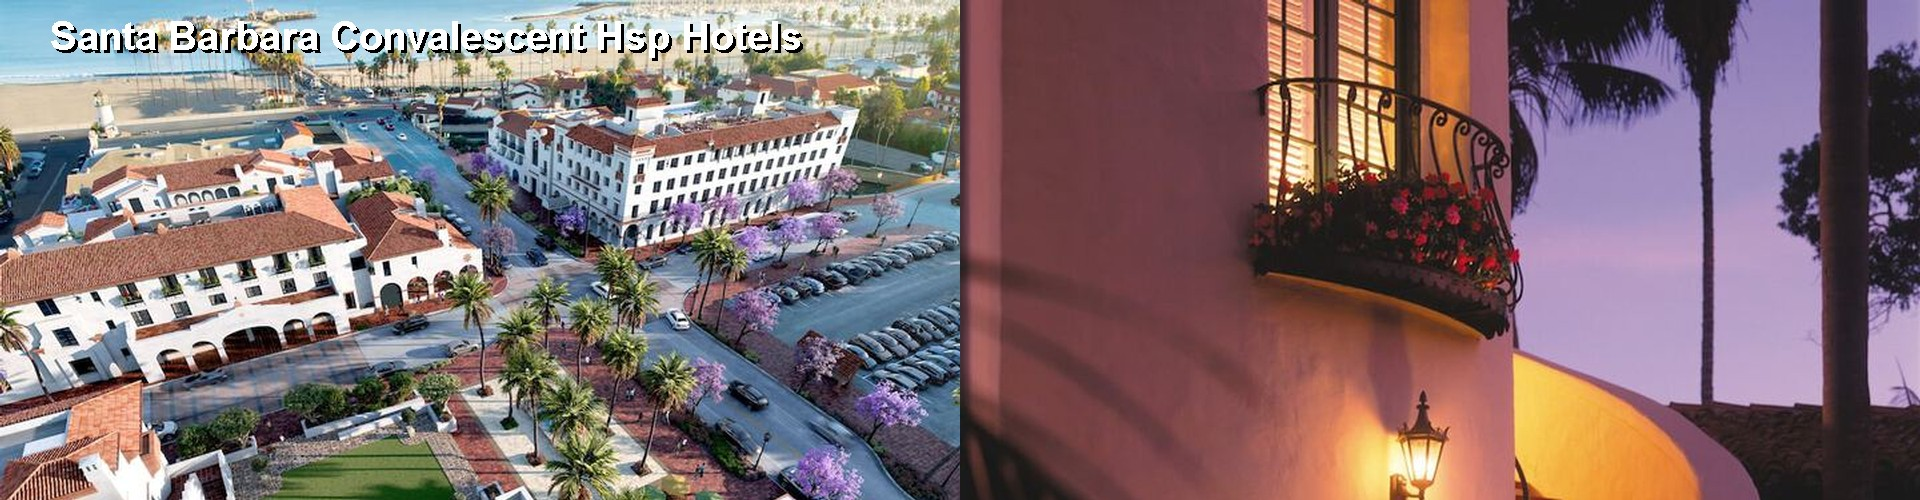 5 Best Hotels near Santa Barbara Convalescent Hsp